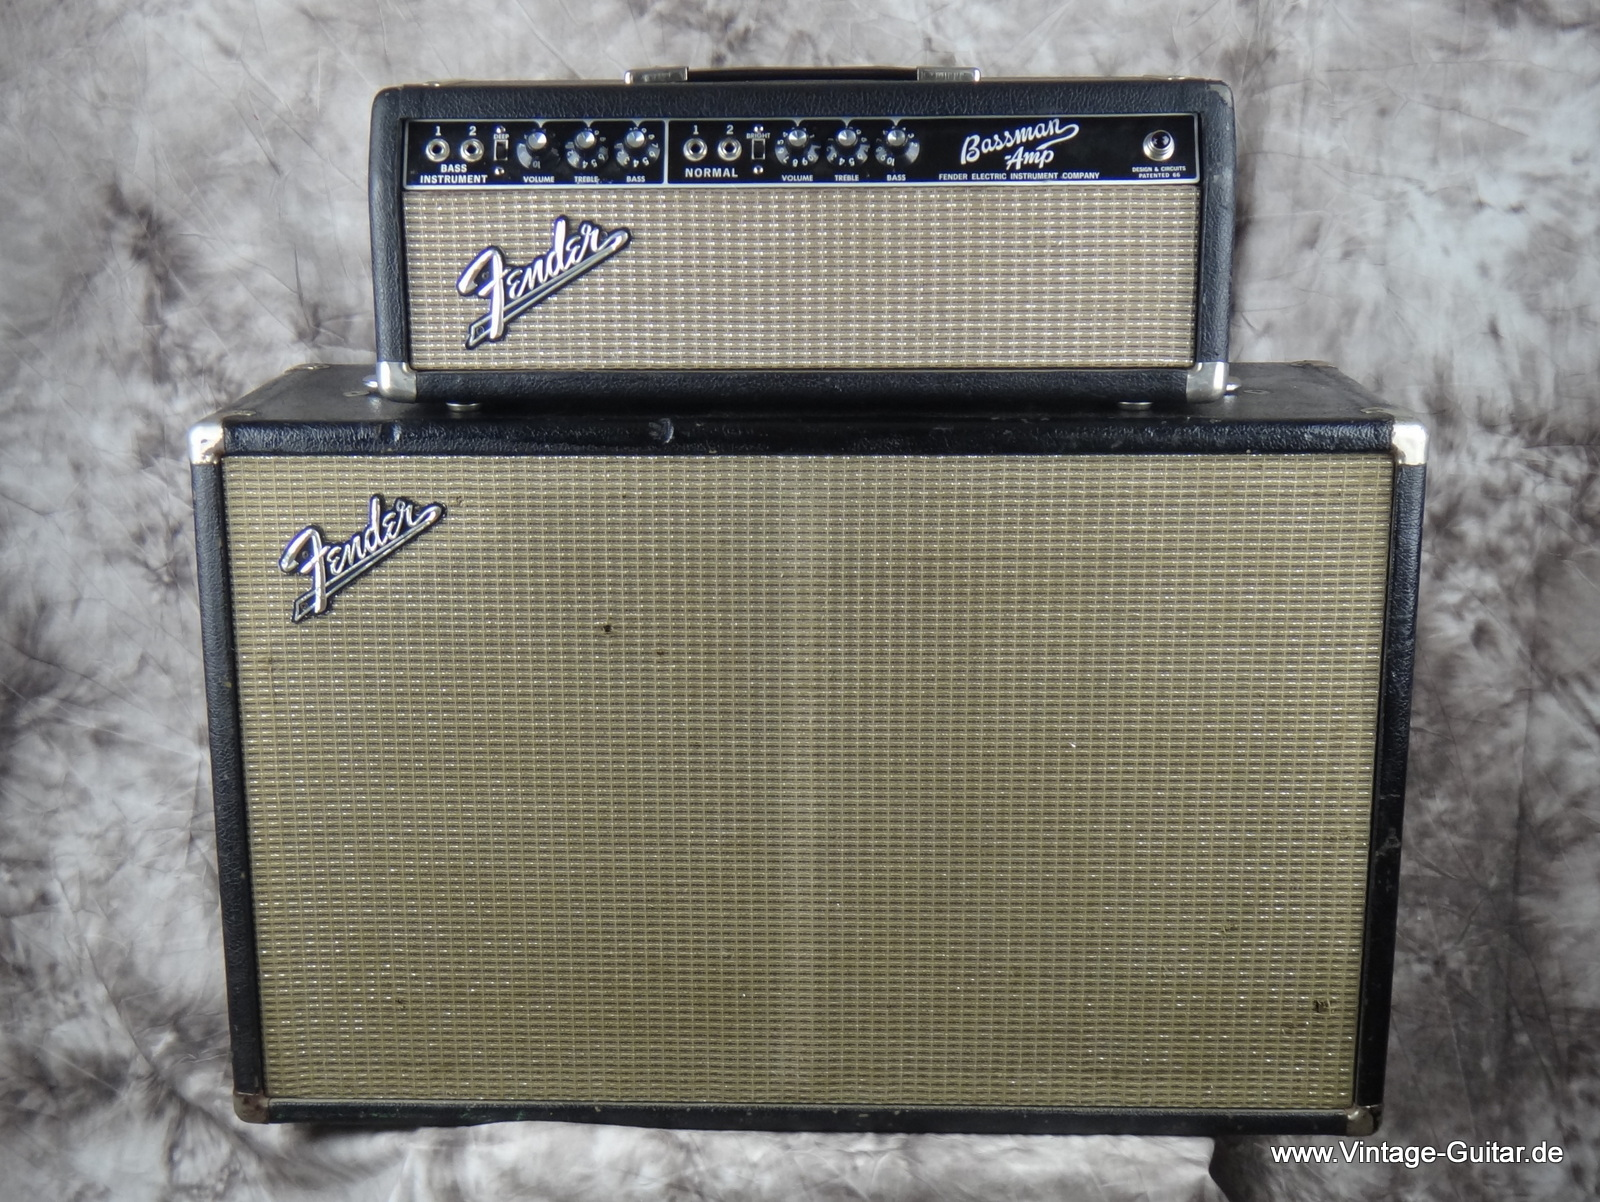 fender about a the sources com from nad don can imgur proxy guitar cabinets i image t good know blackface cab different telecaster were any all when threads information of made cabinet forum found bassman find